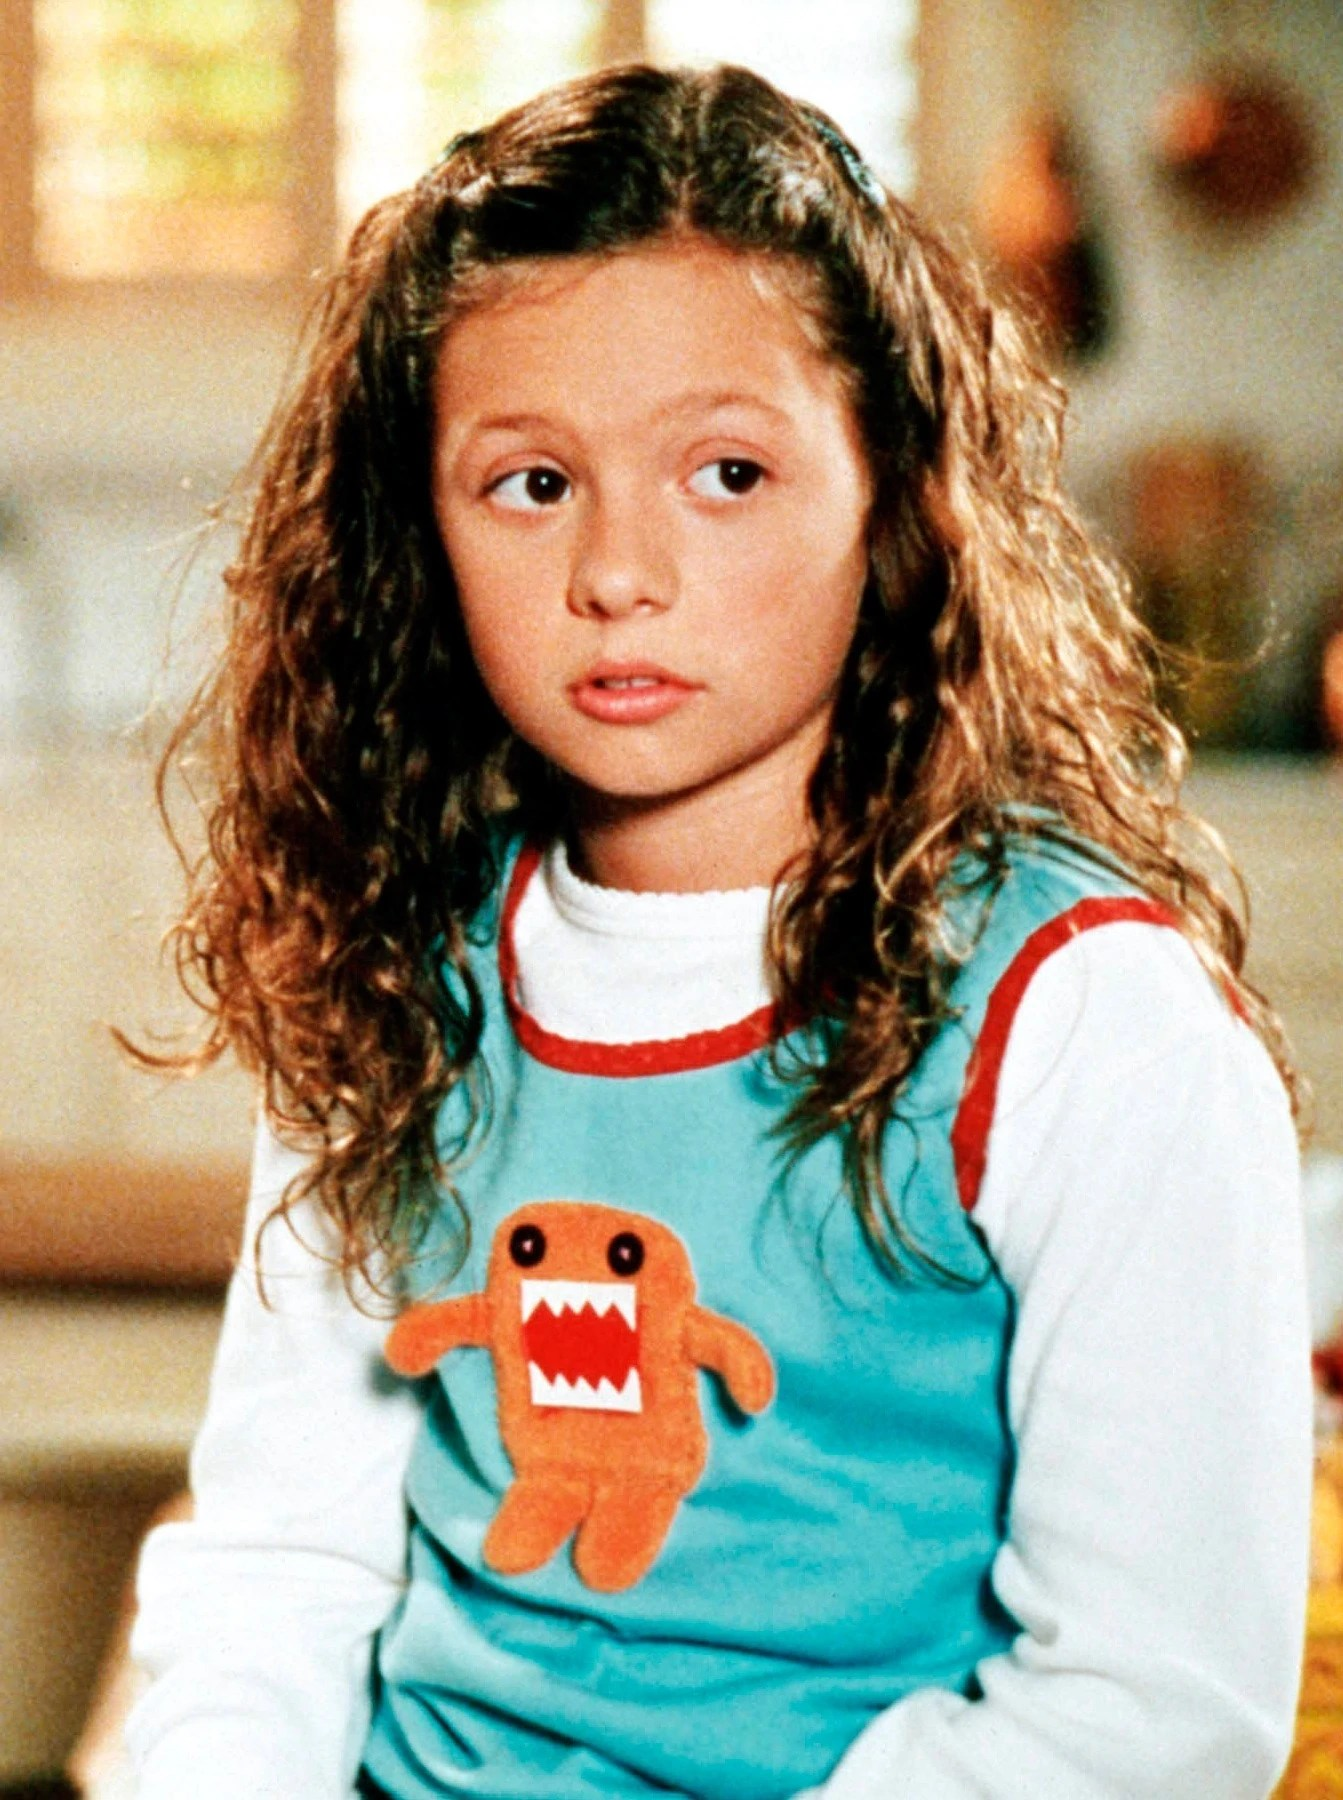 And Mary Lucy 7th Heaven